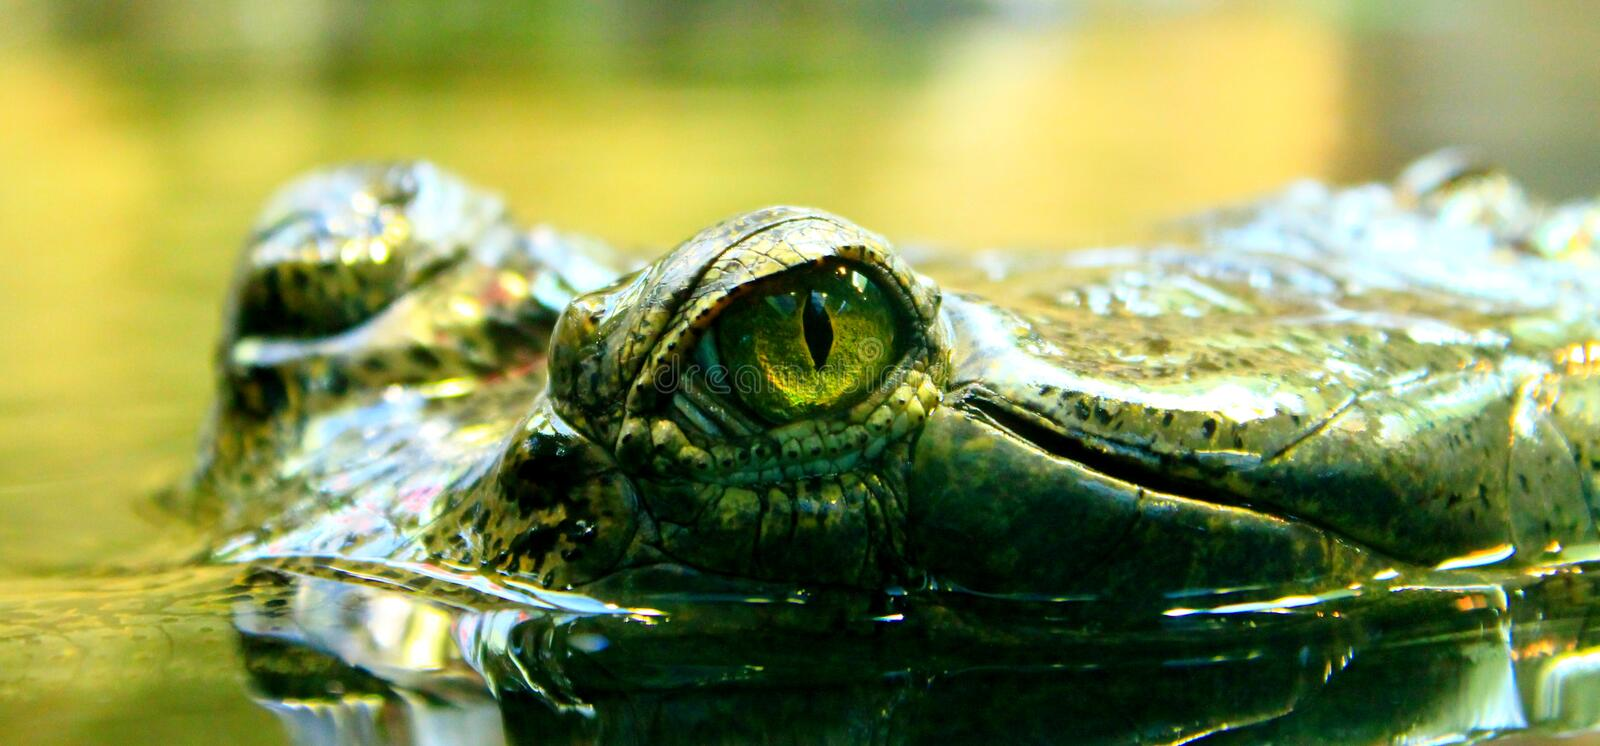 Eye of crocodile (indian gavial) royalty free stock images